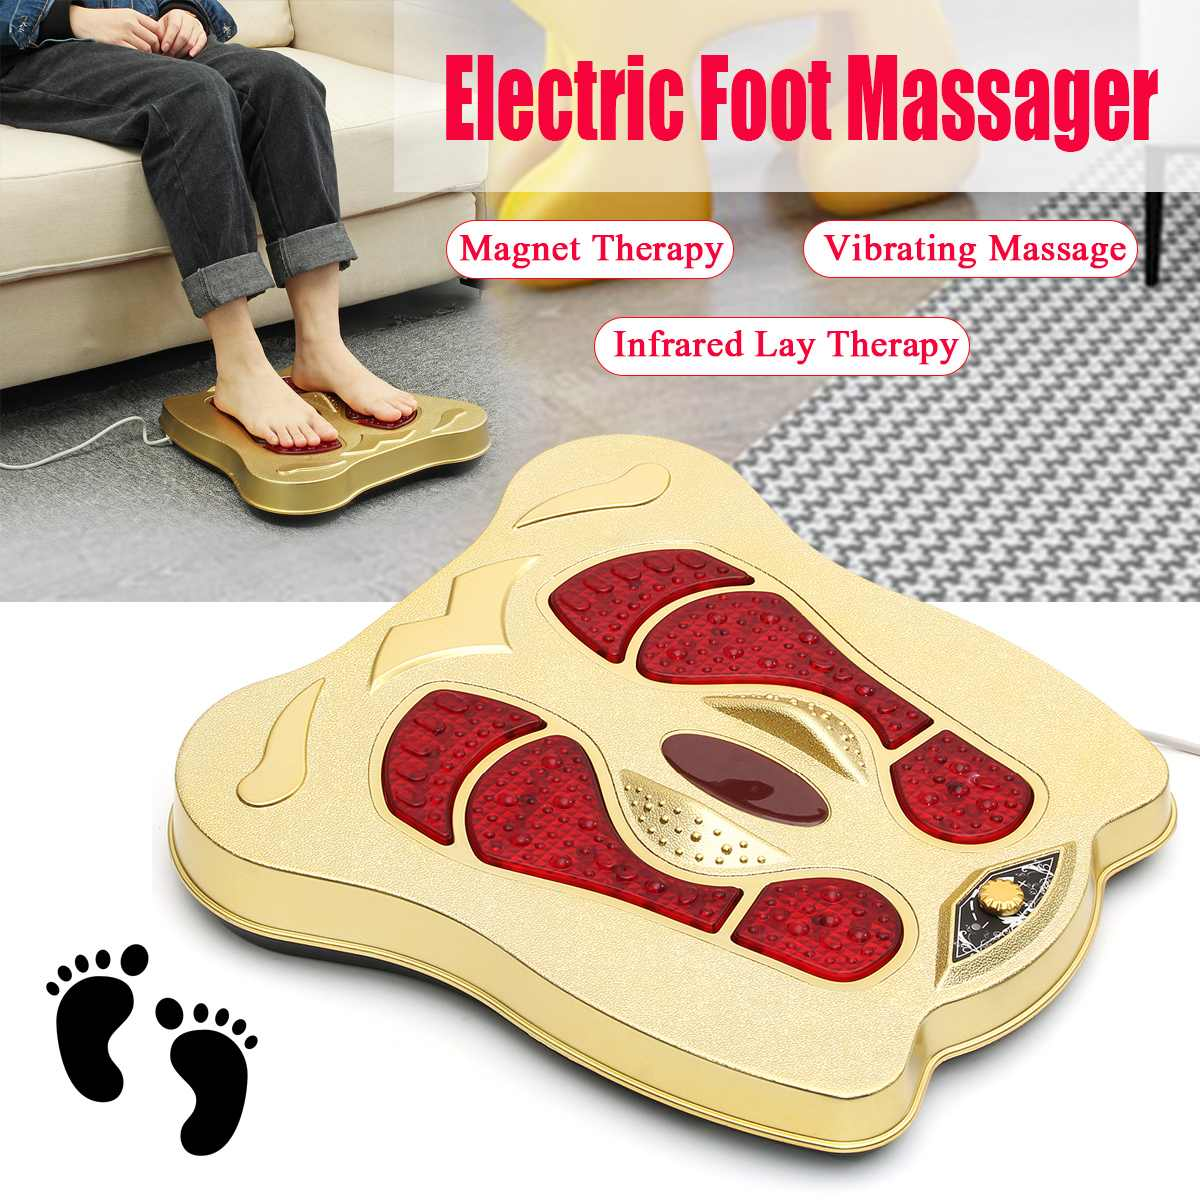 Vibration In Foot >> Us 32 88 35 Off Home Foot Massager 220v Shiatsu Circulation Vibration Blood Booster Infrared Electromagnetic Foot Massager Electric Machine Gift In